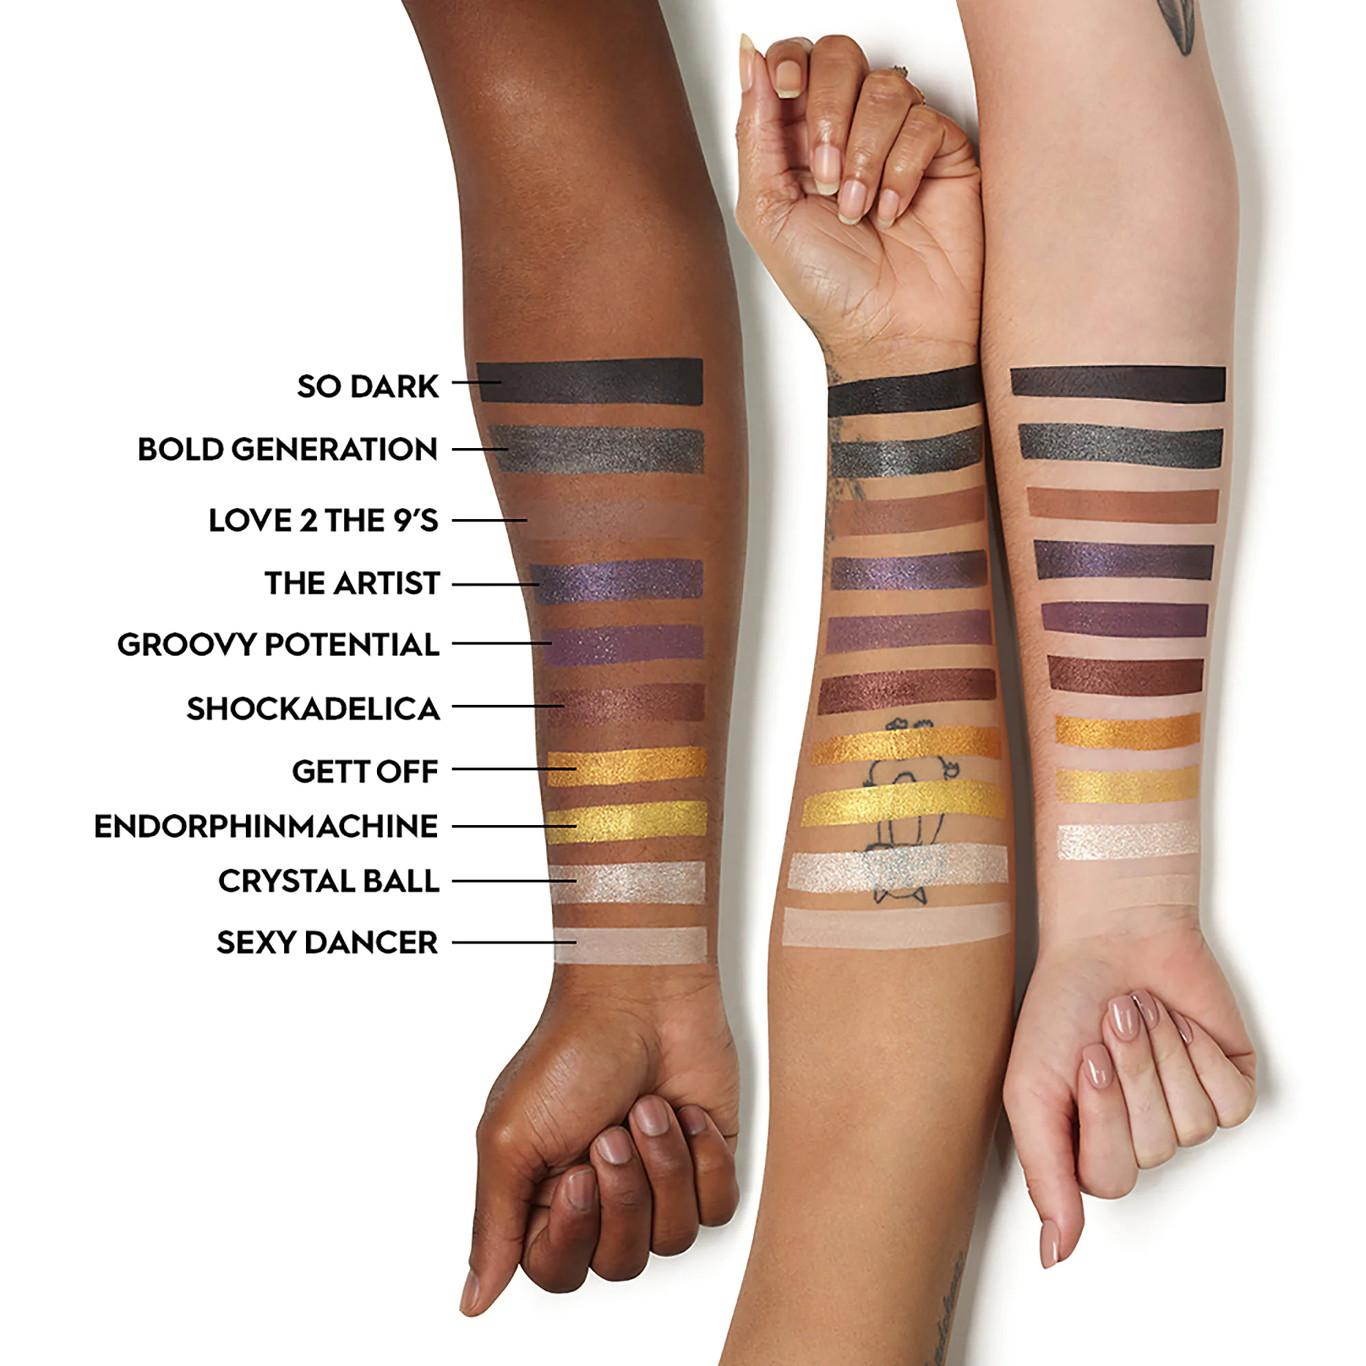 Urban Decay Prince Collection Prince U Got The Look Eyeshadow Palette Arm Swatches